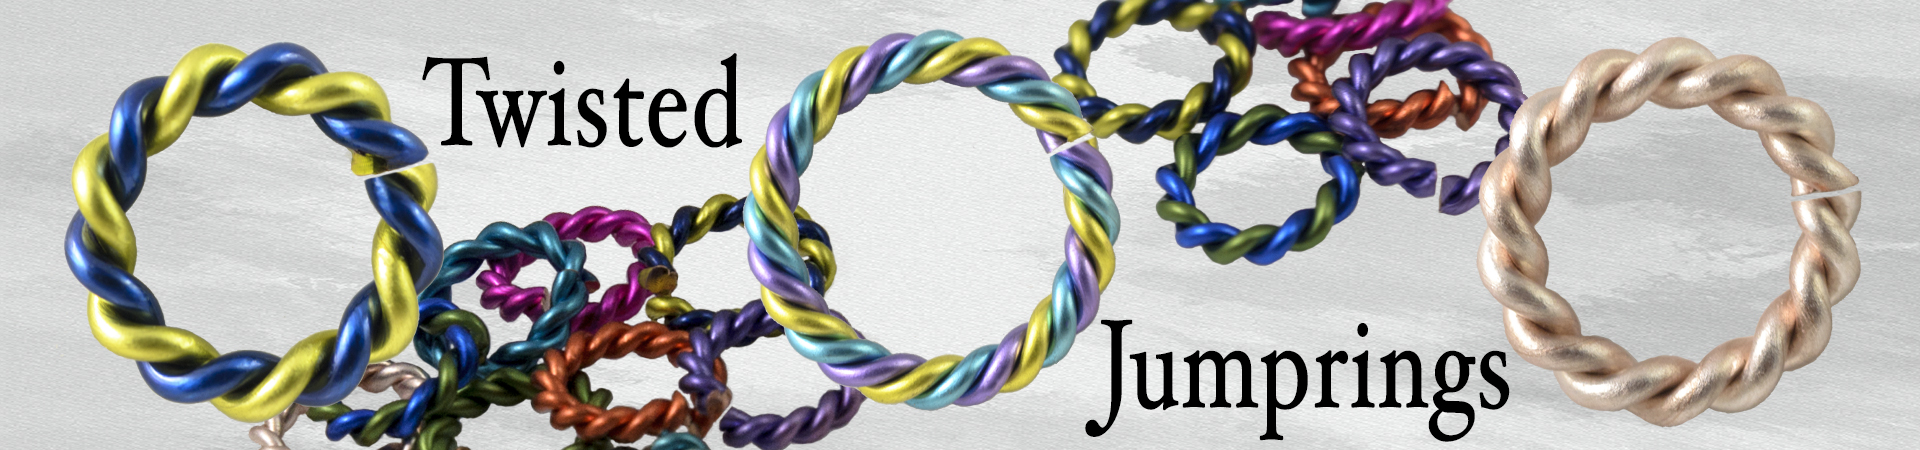 New Twisted Jumprings